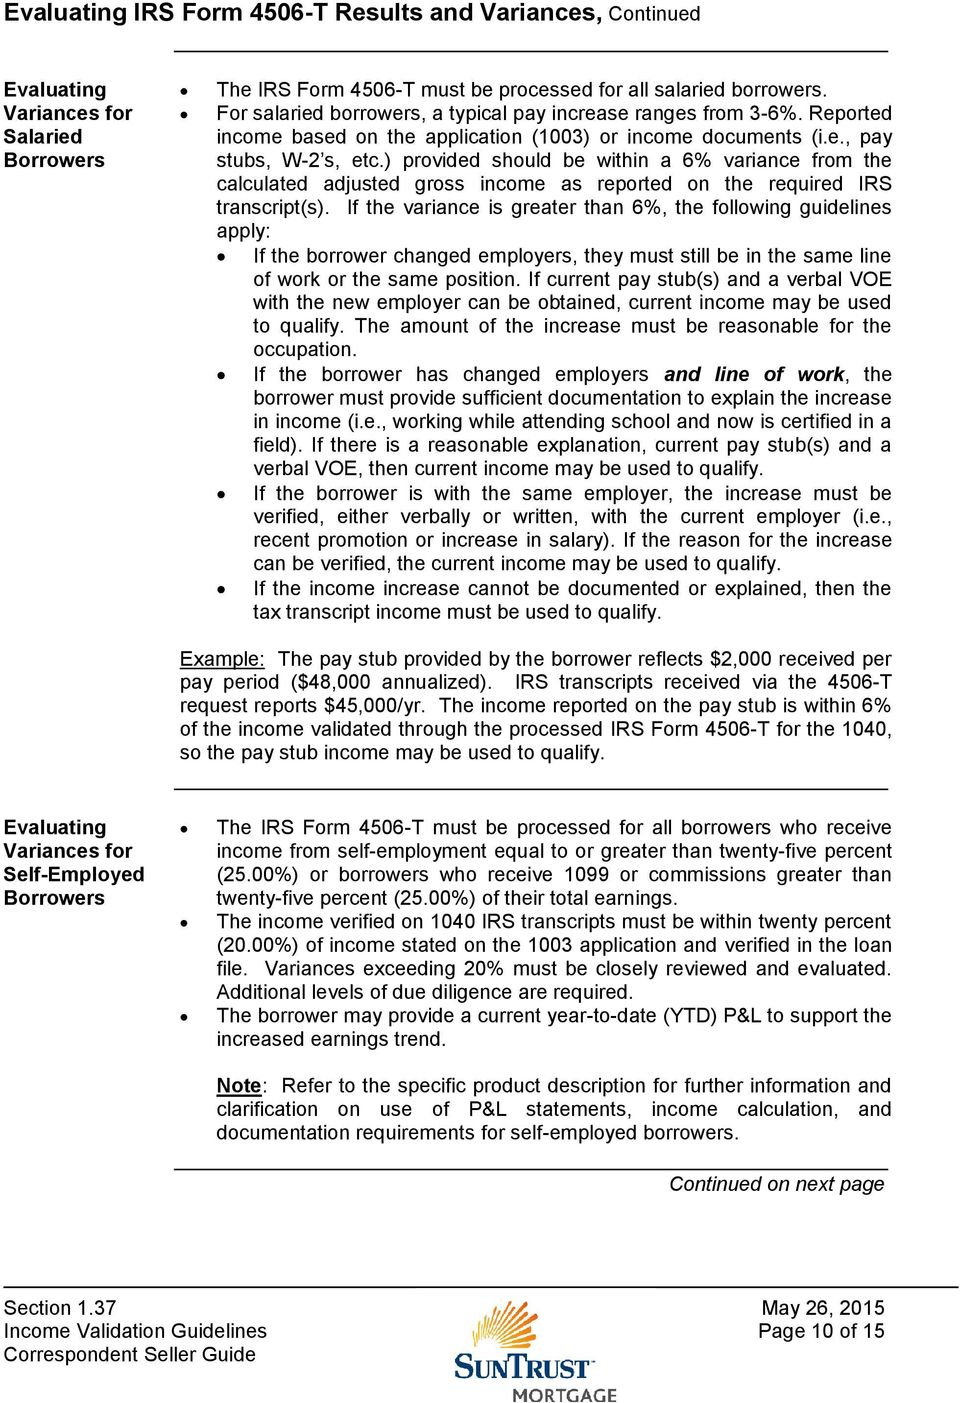 Section 1.37 Income Validation Guidelines - PDF